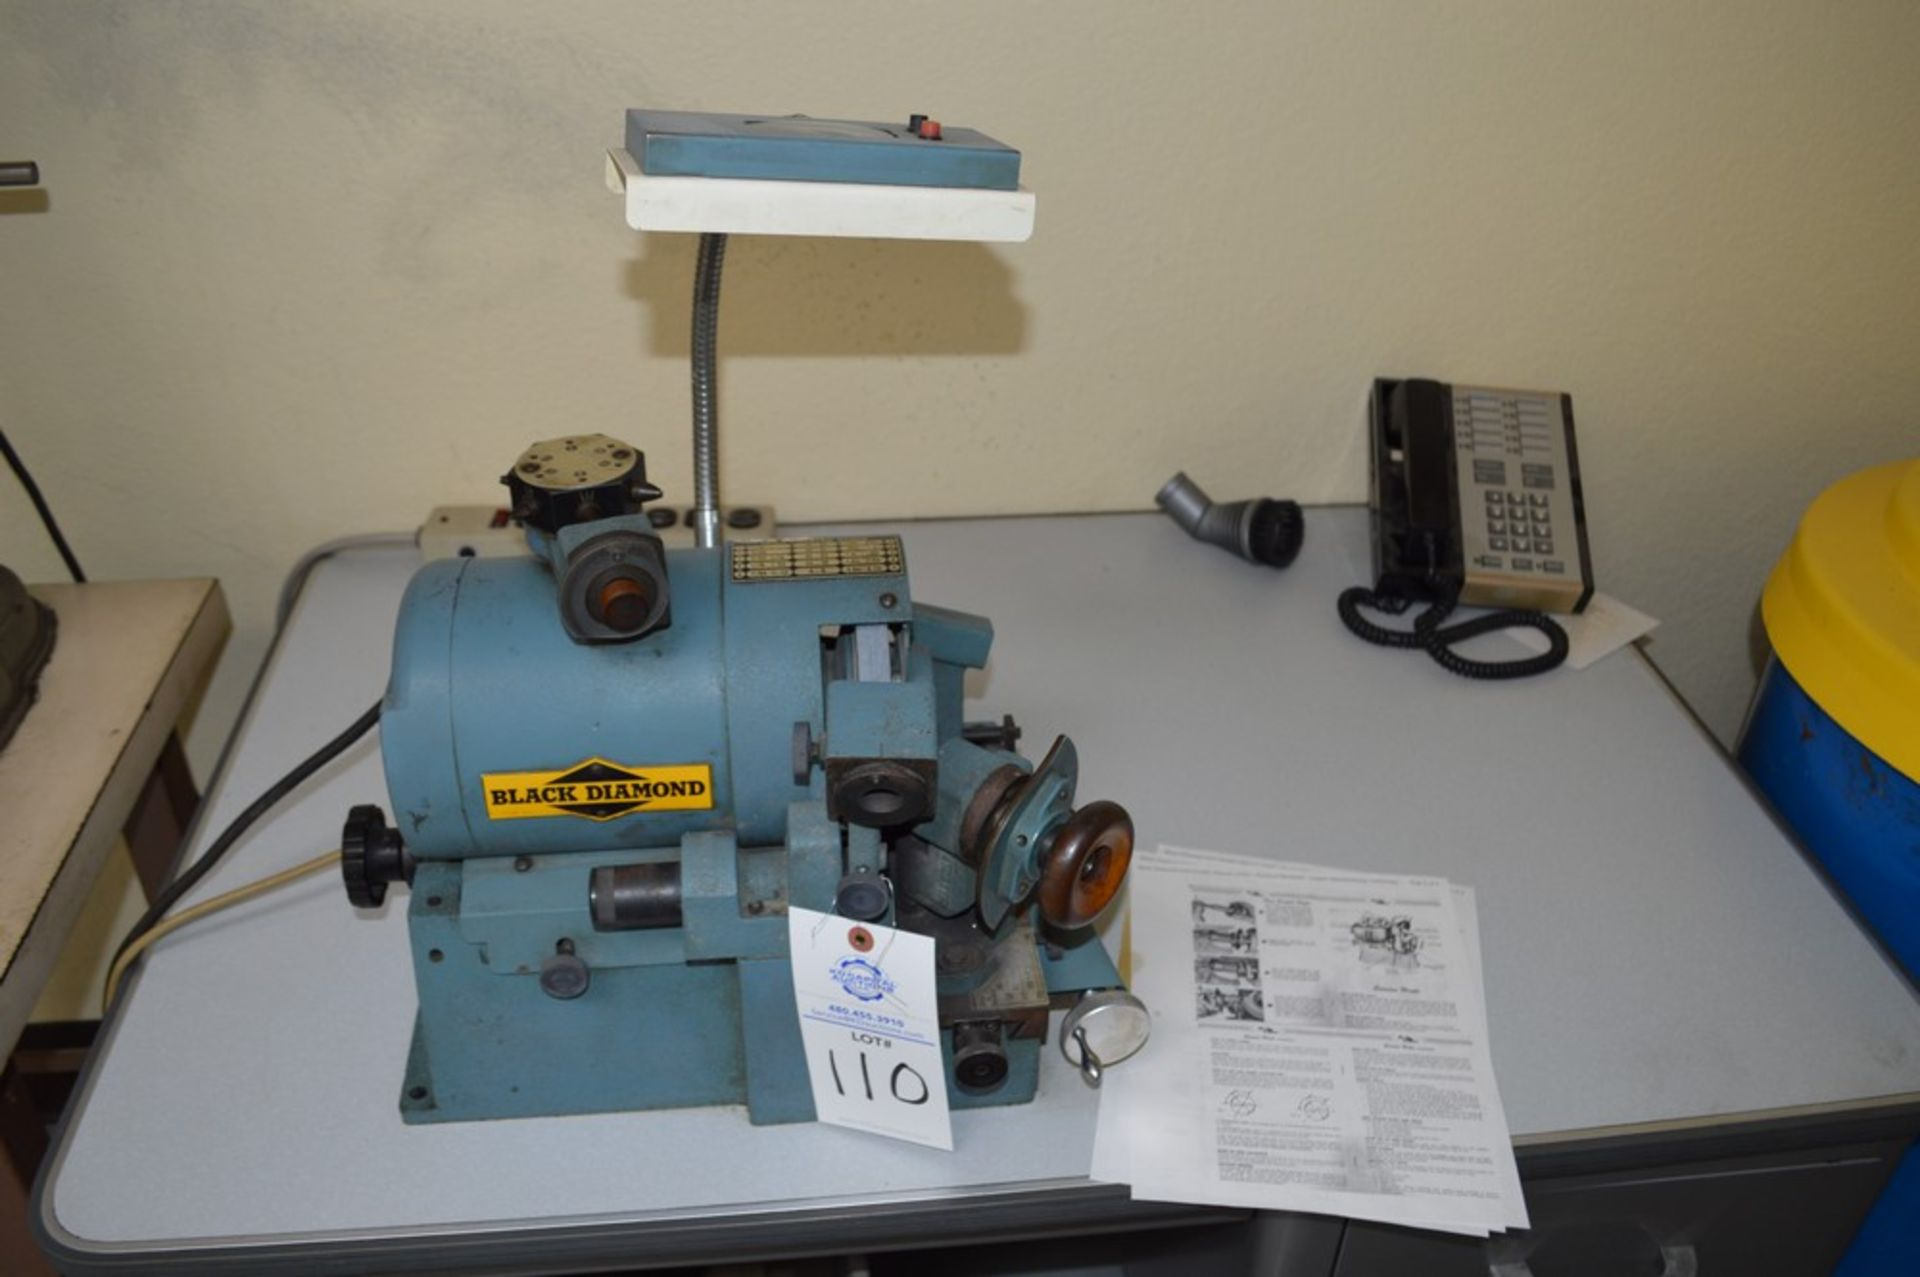 Black diamond precision drill grinder with 6 position tool changer and light